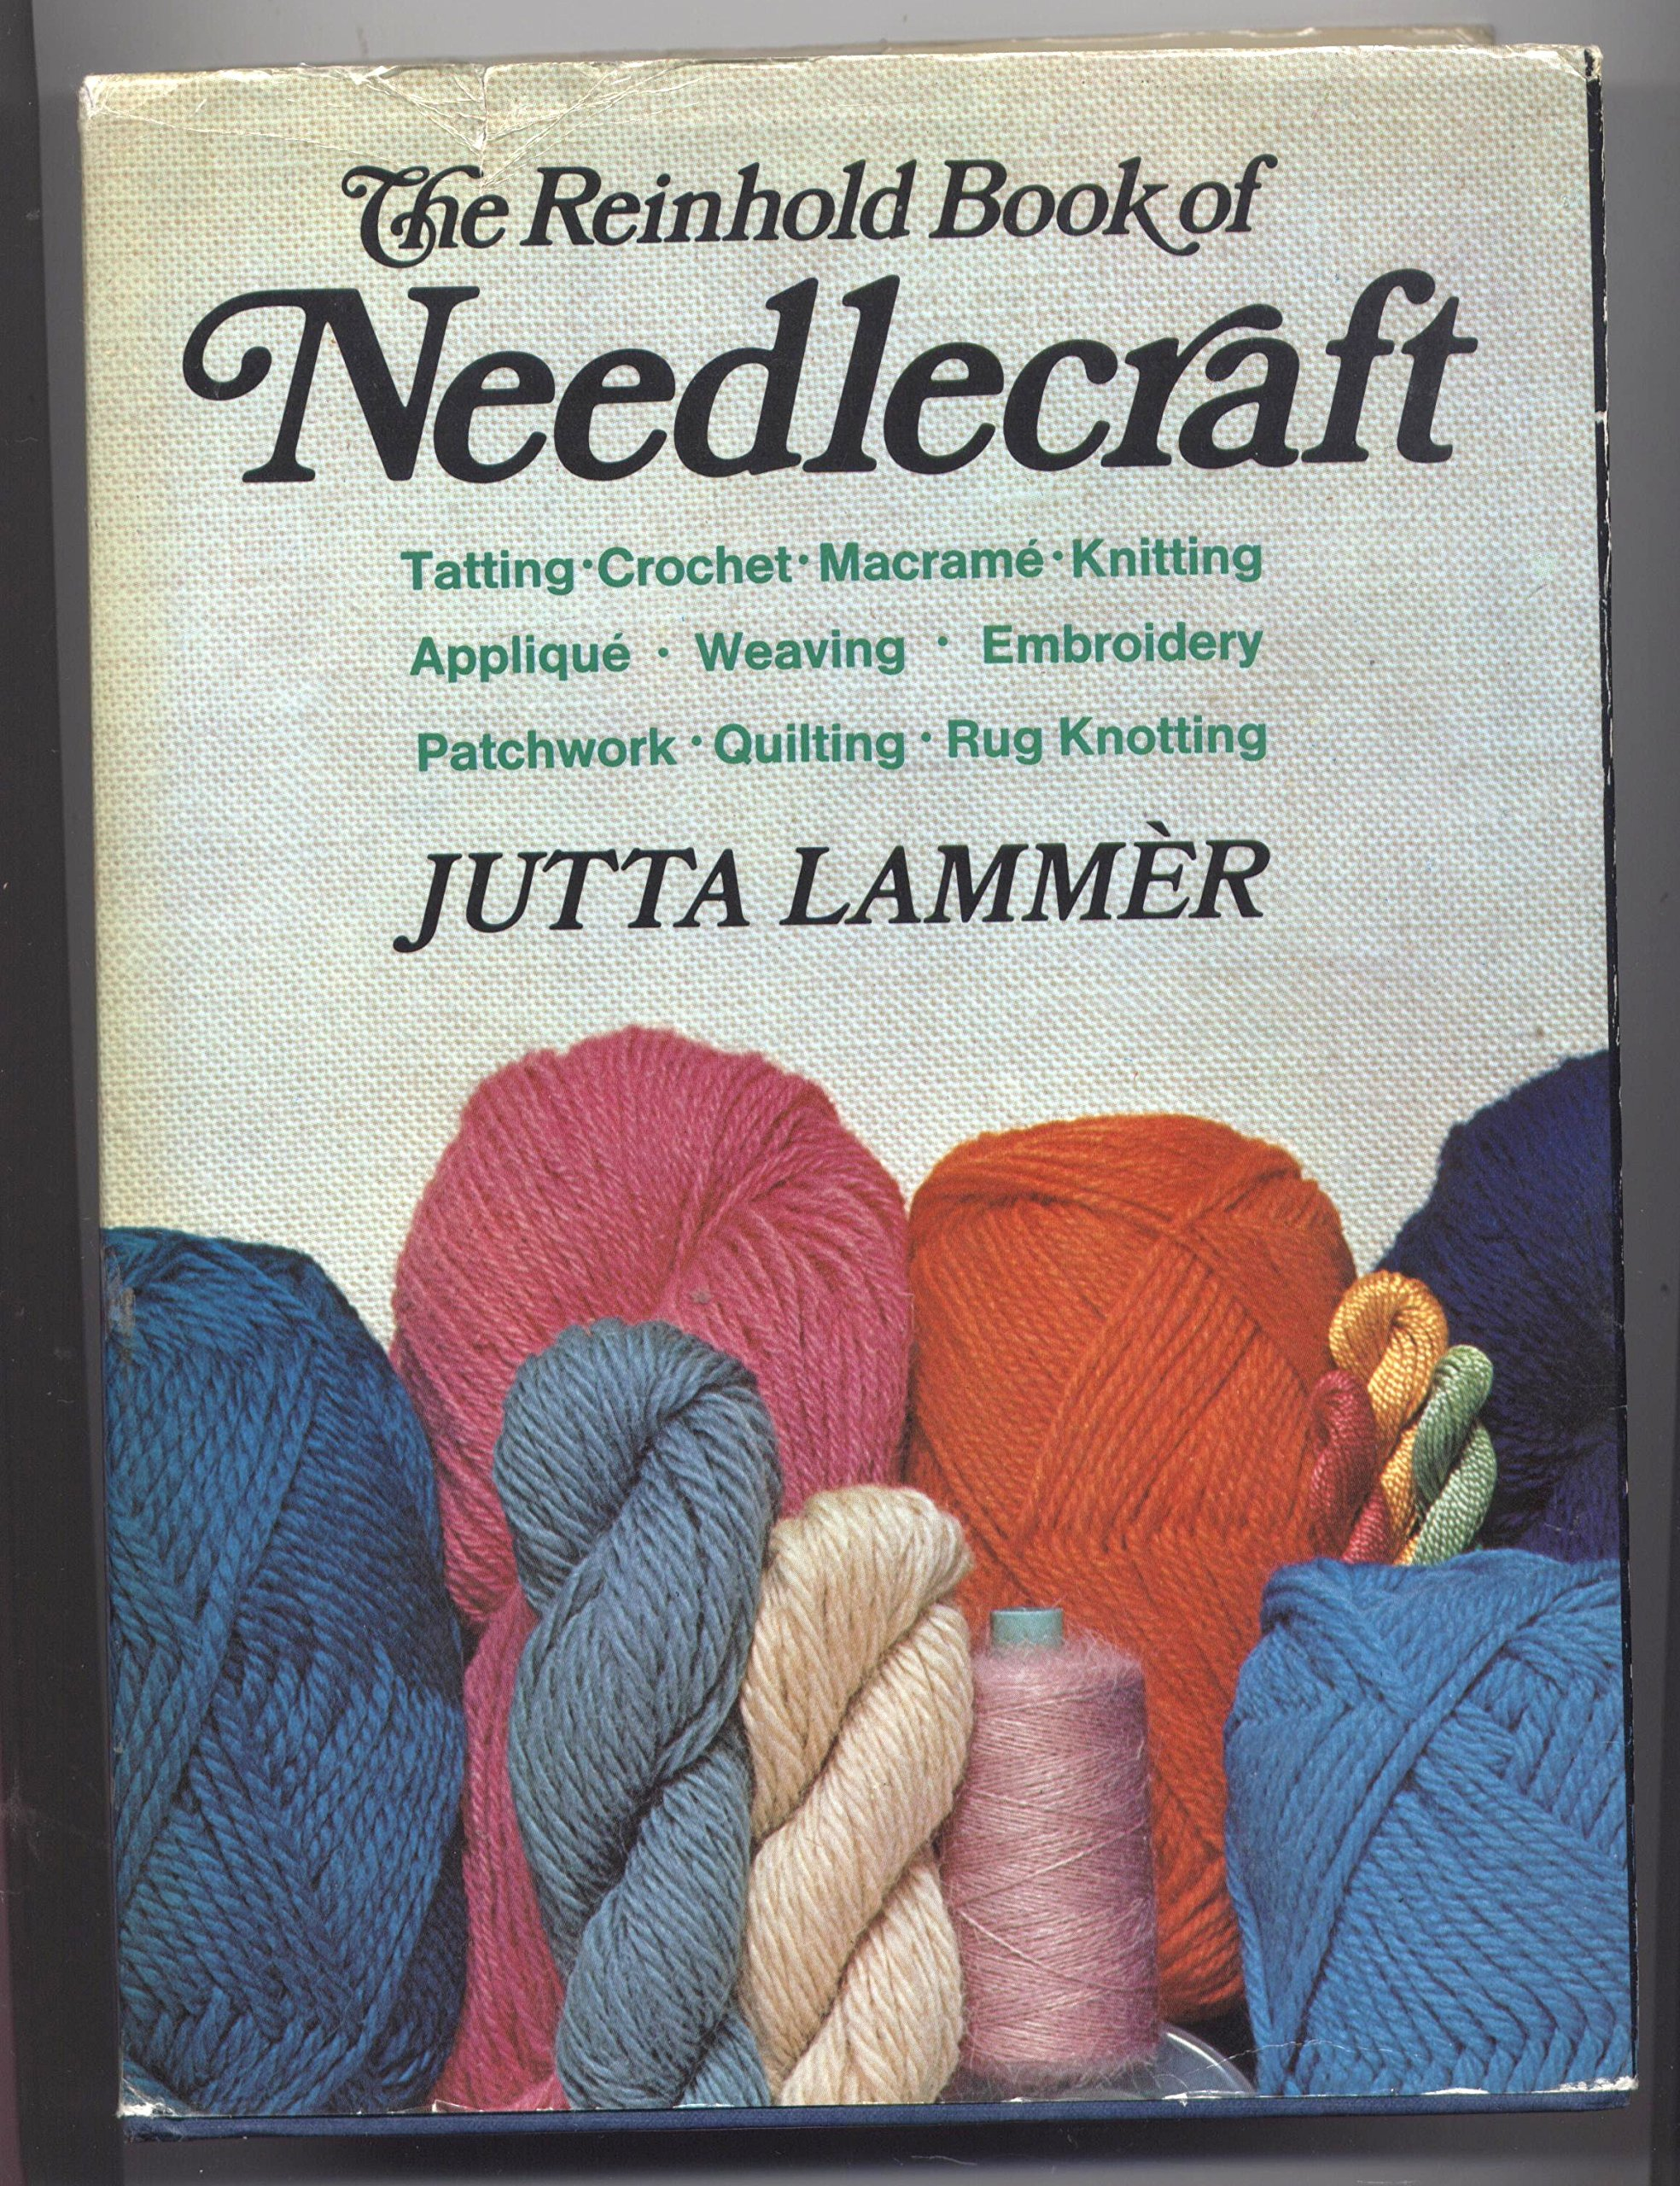 The Reinhold book of needlecraft: embroidery, crochet, knitting, weaving, macrame, applique, patchwork, and many other handicraft techniques, old and new